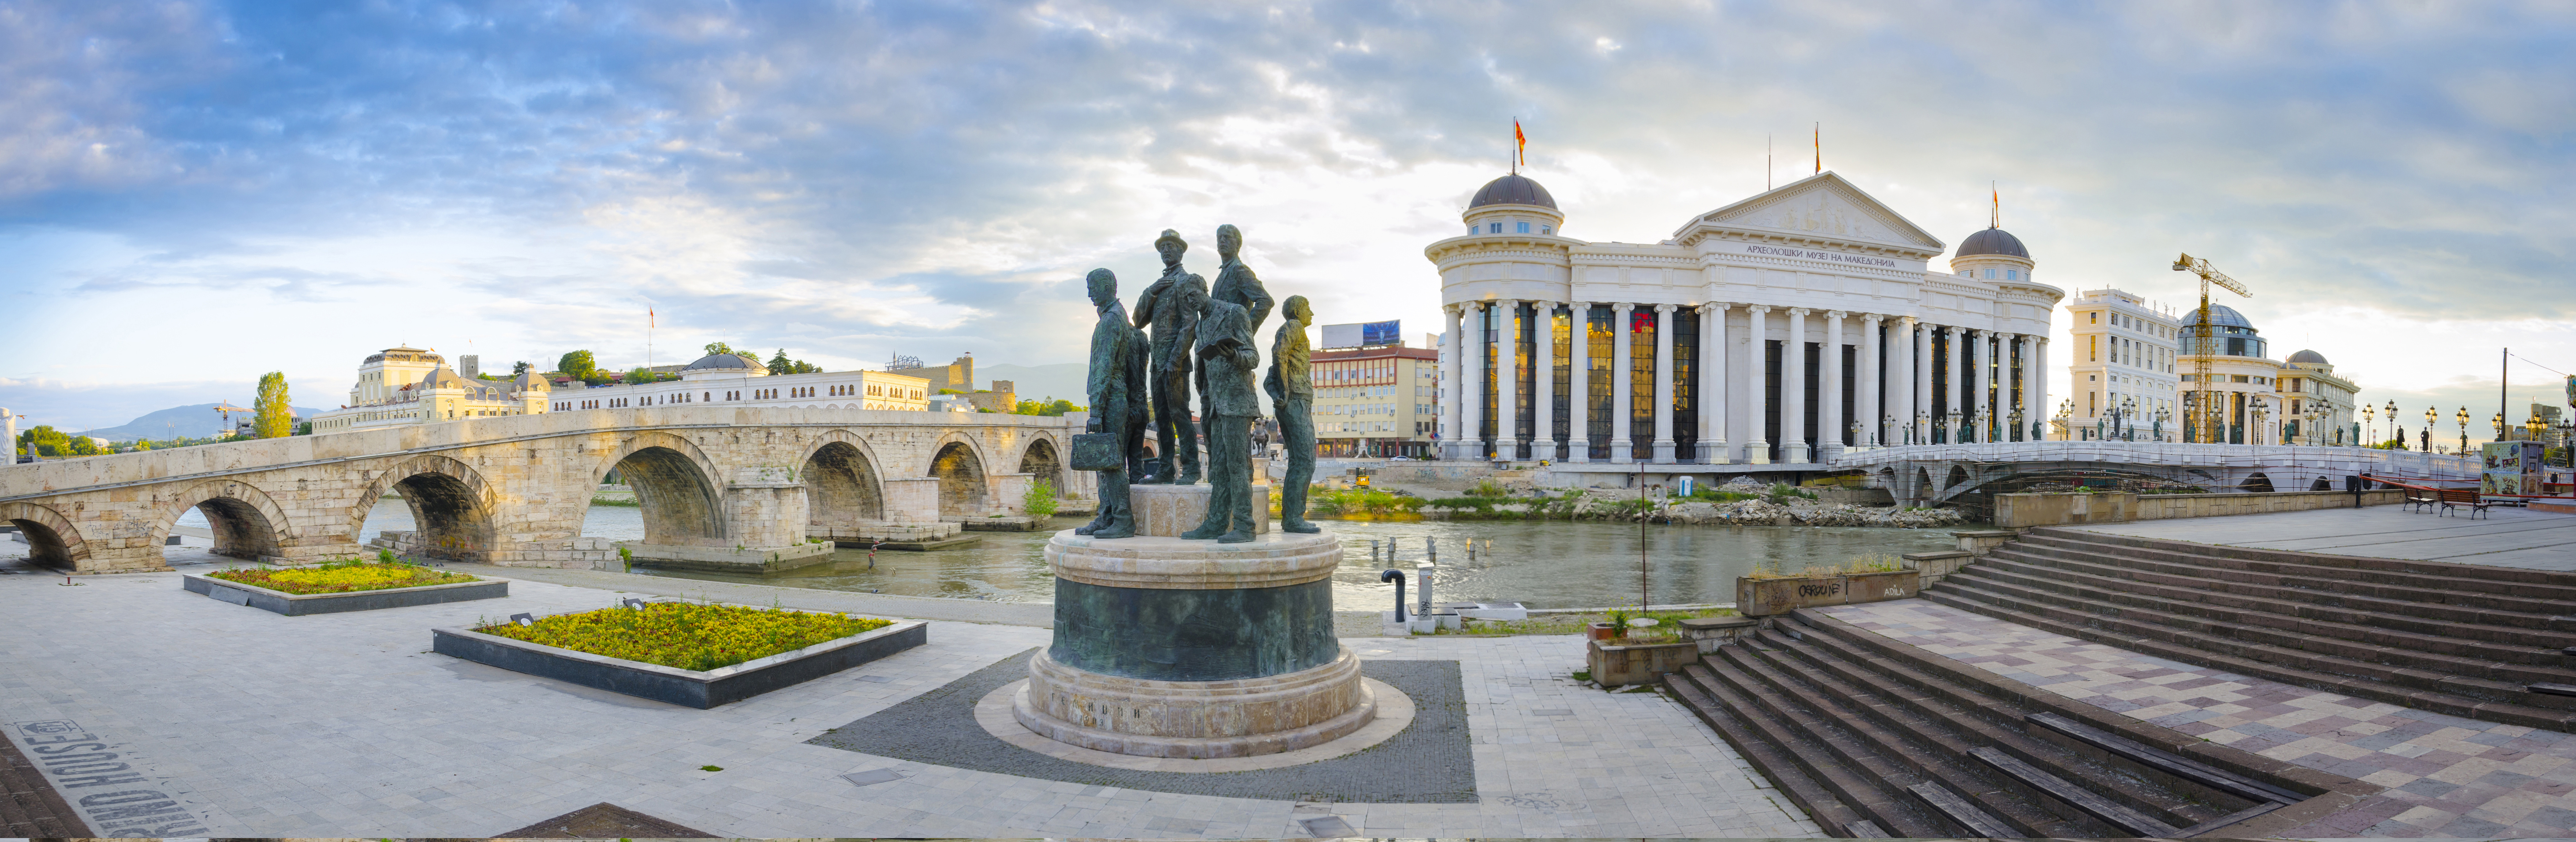 For or against opening accession talks with North Macedonia?